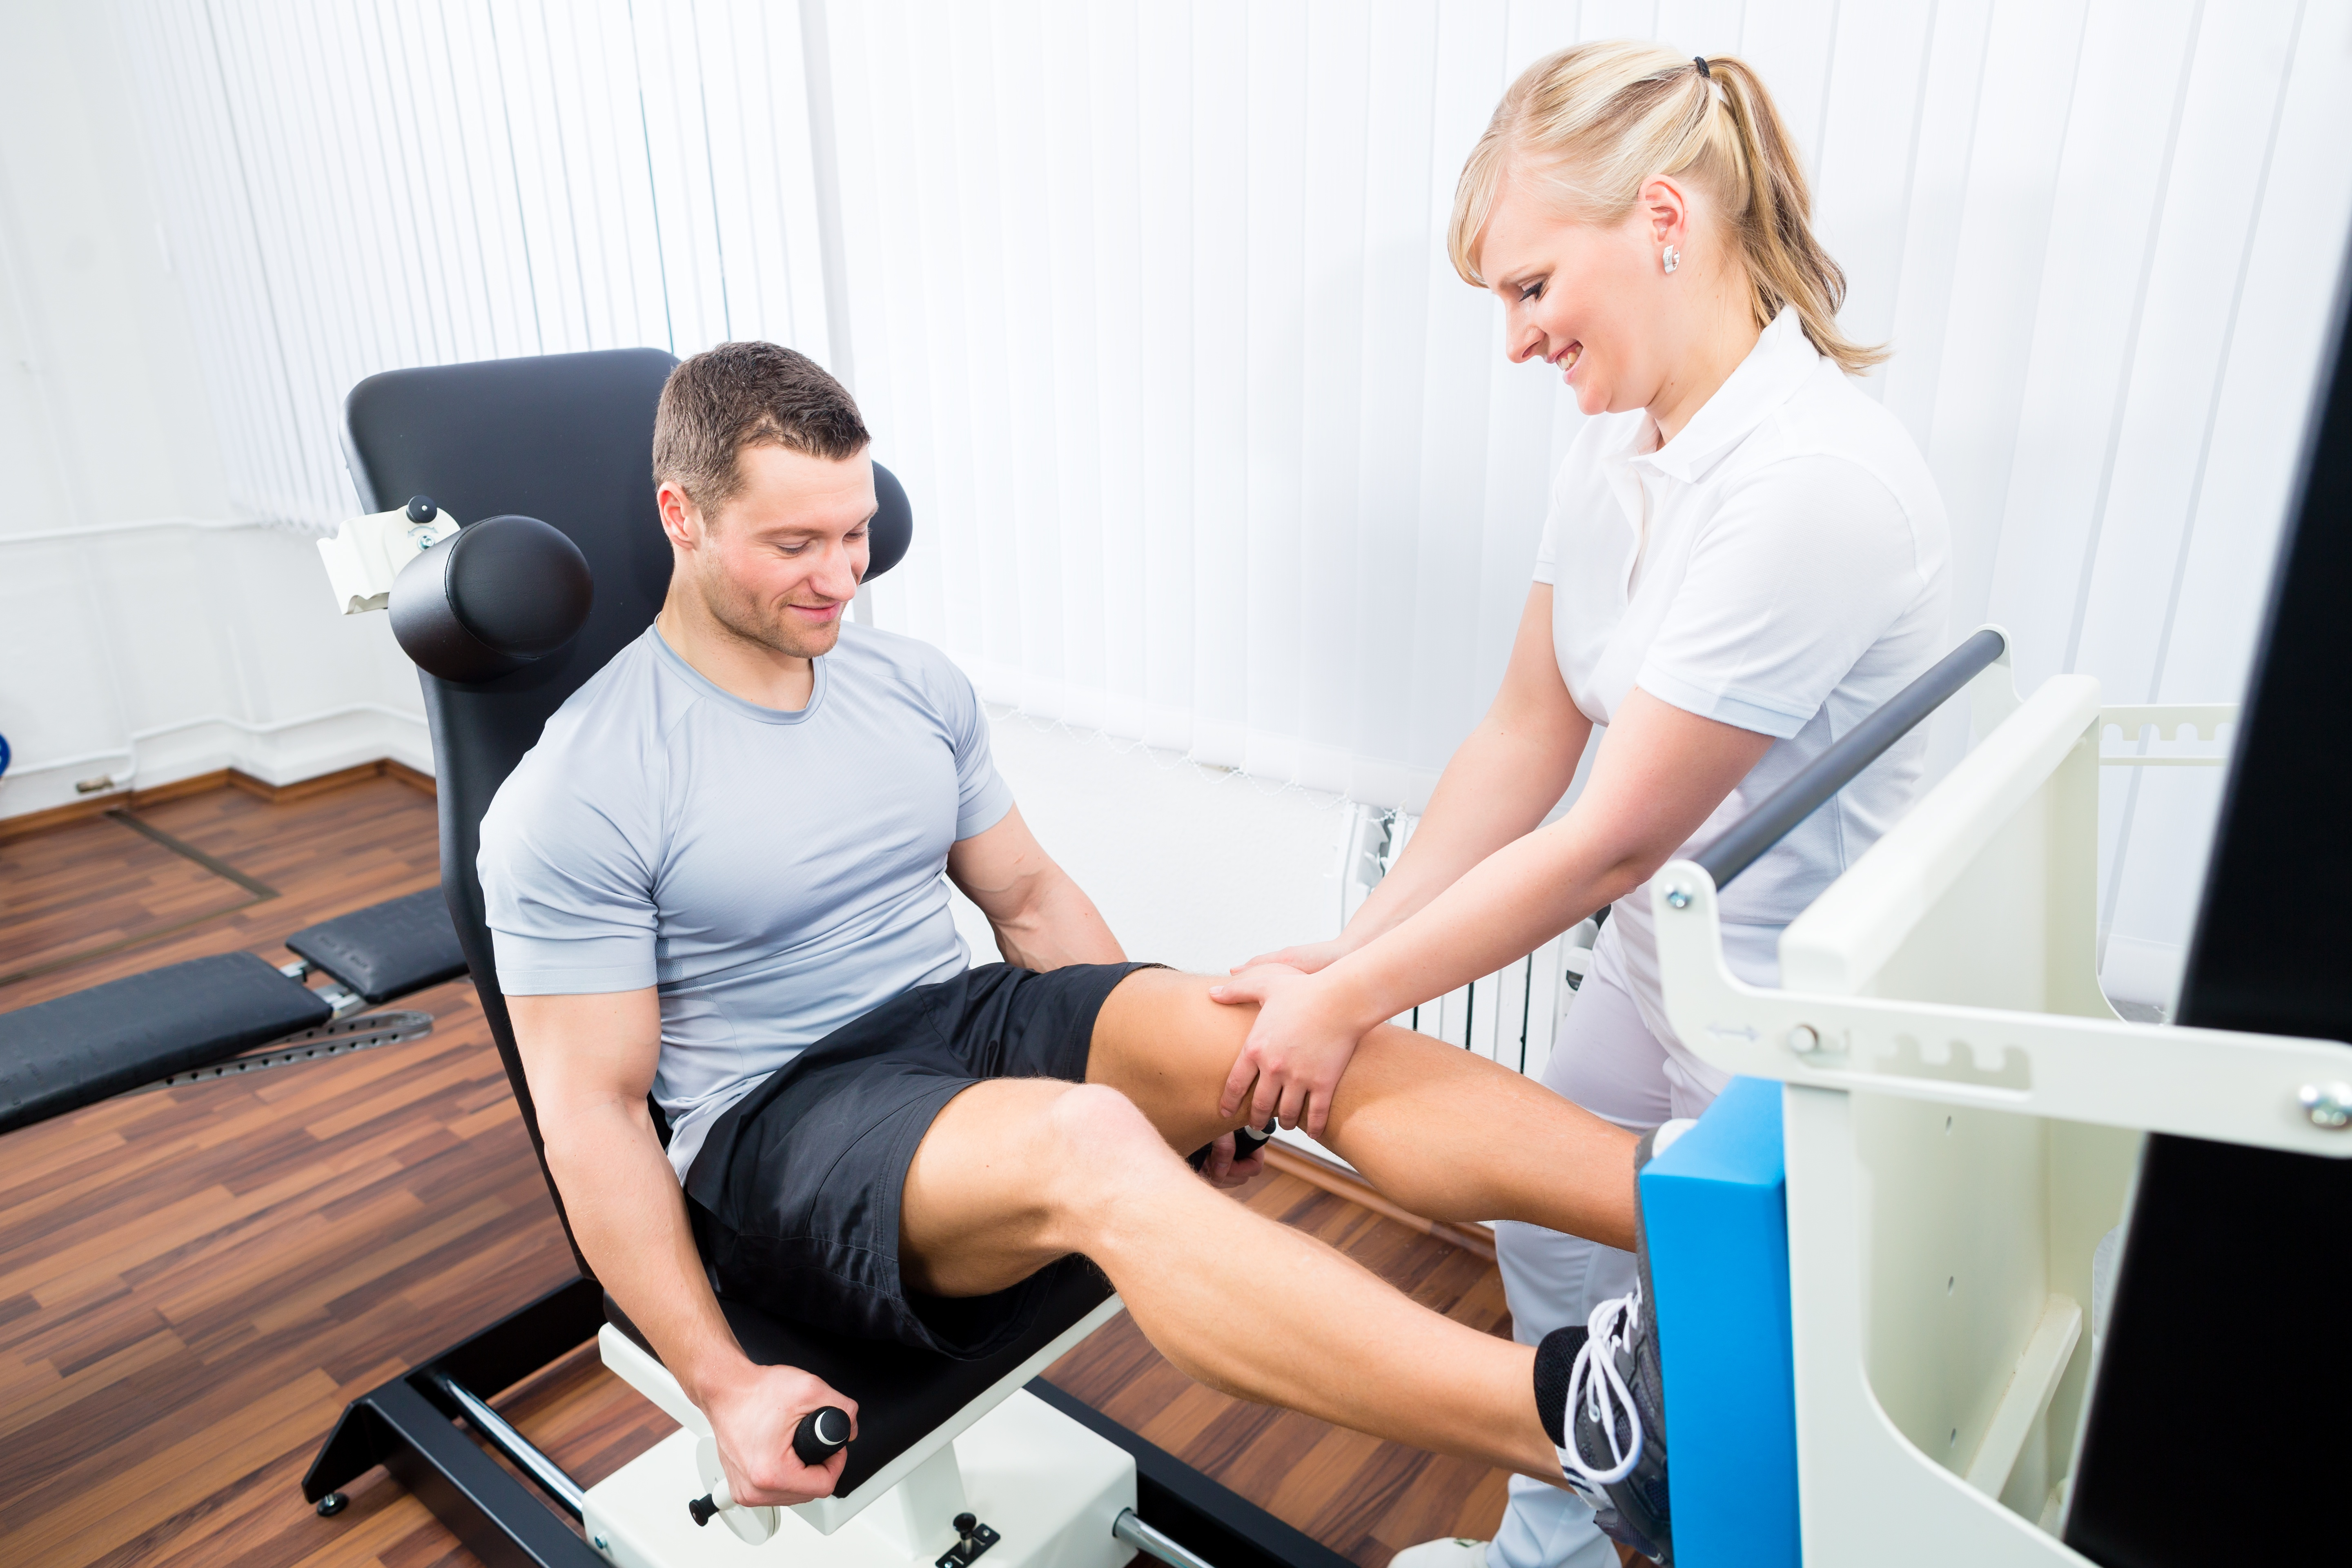 Physical-Therapist-Assistant-Helping-Athlete.jpg